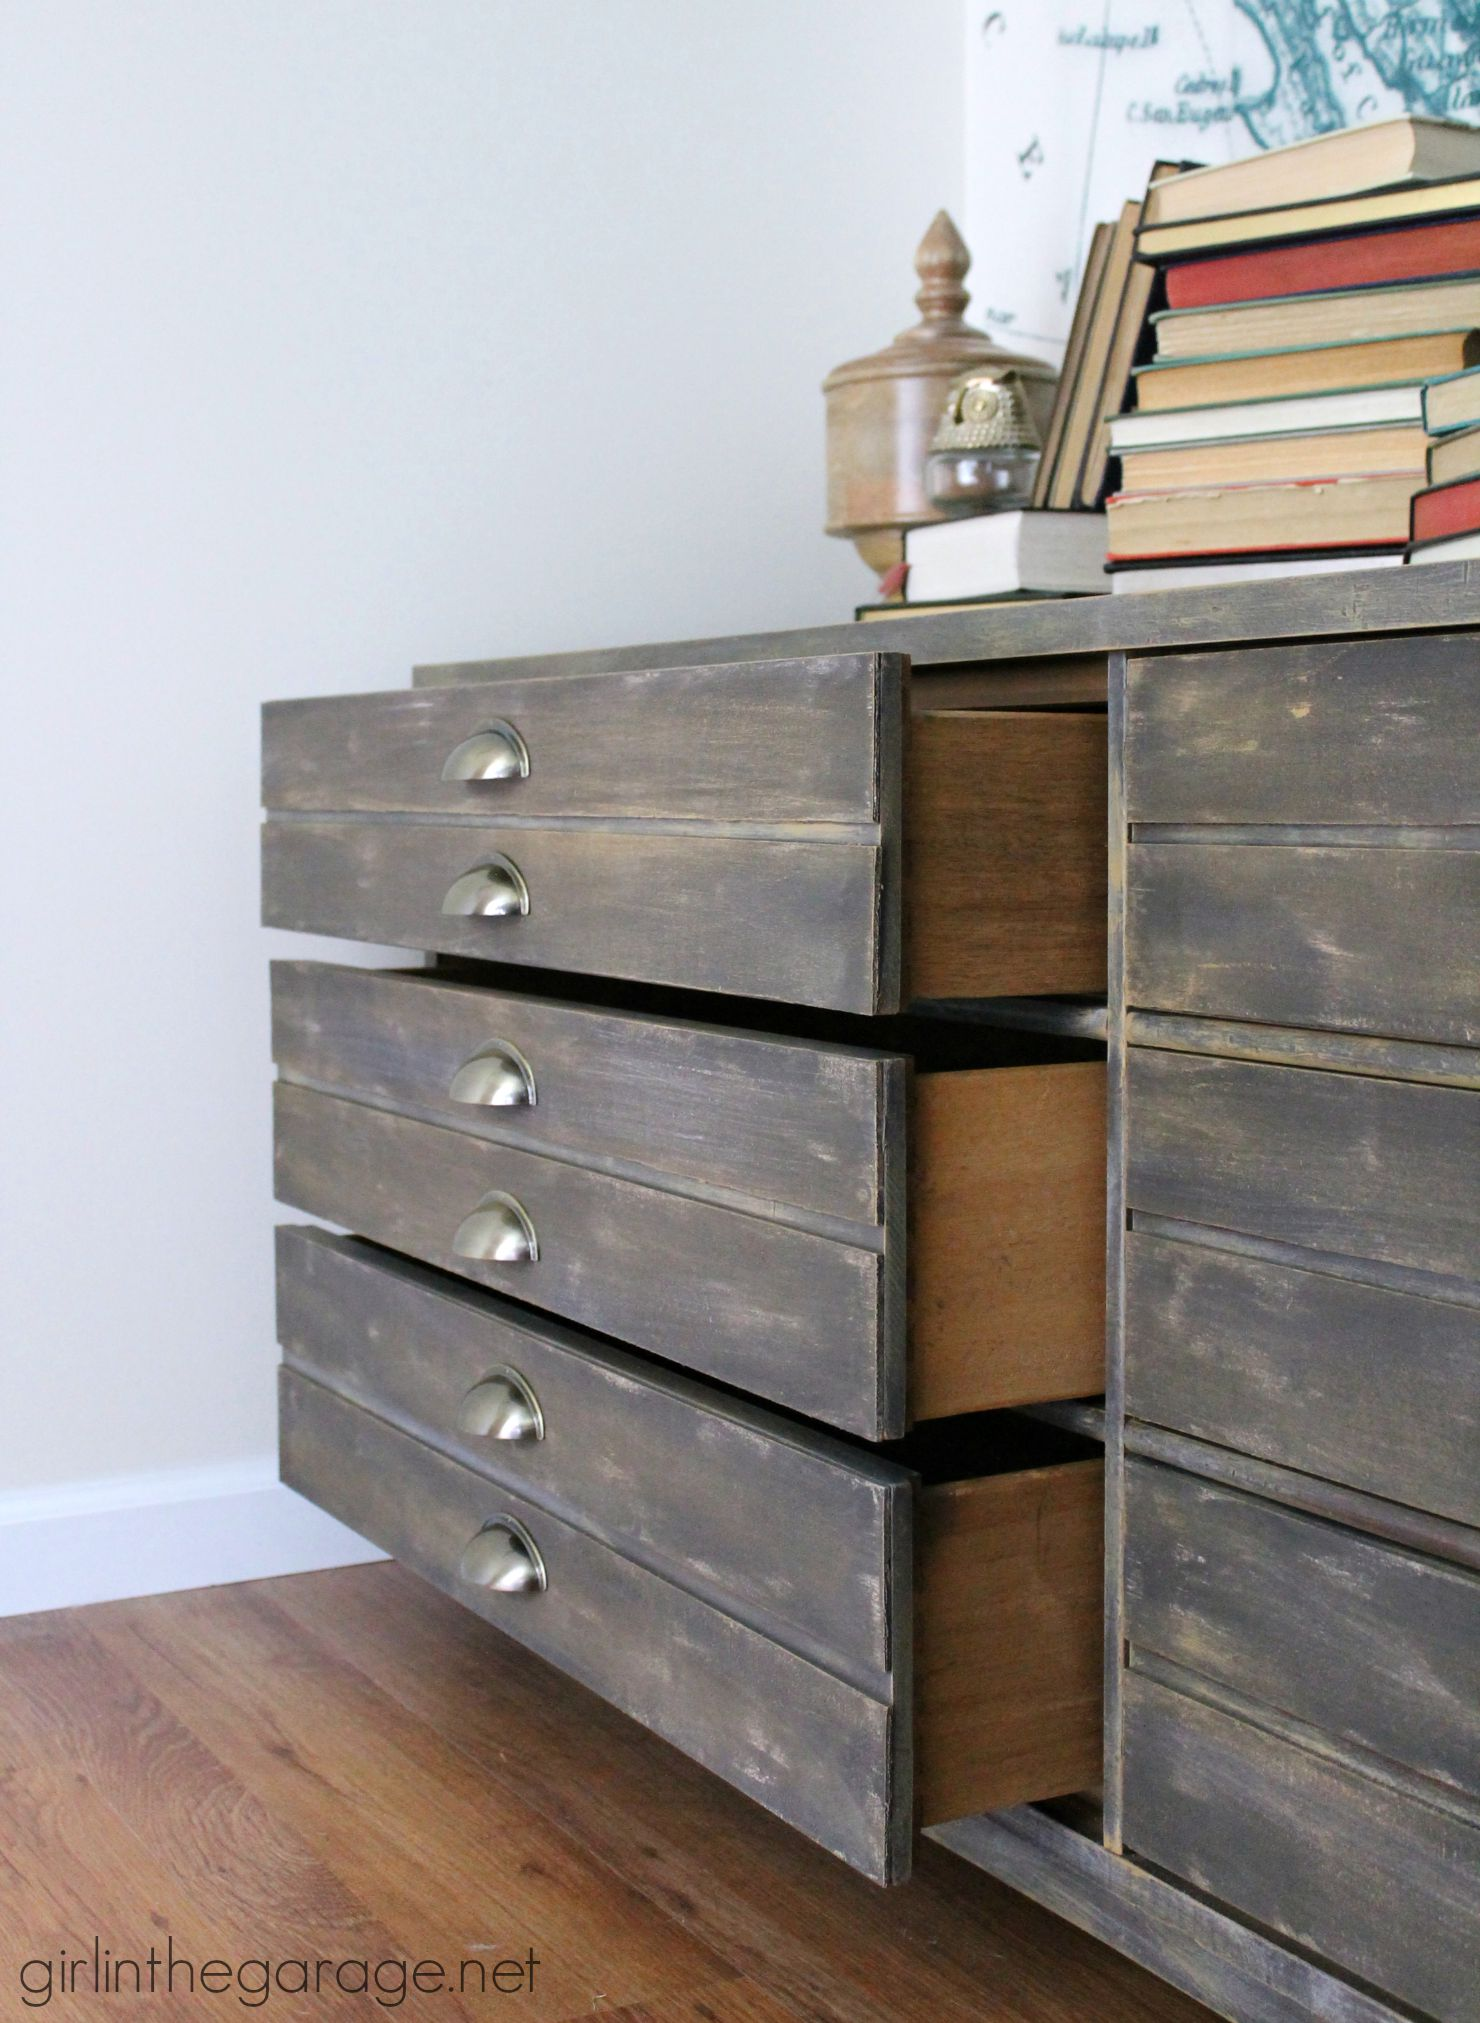 Repurpose a free dresser into an Anthropologie inspired faux industrial printer's cabinet - Girl in the Garage